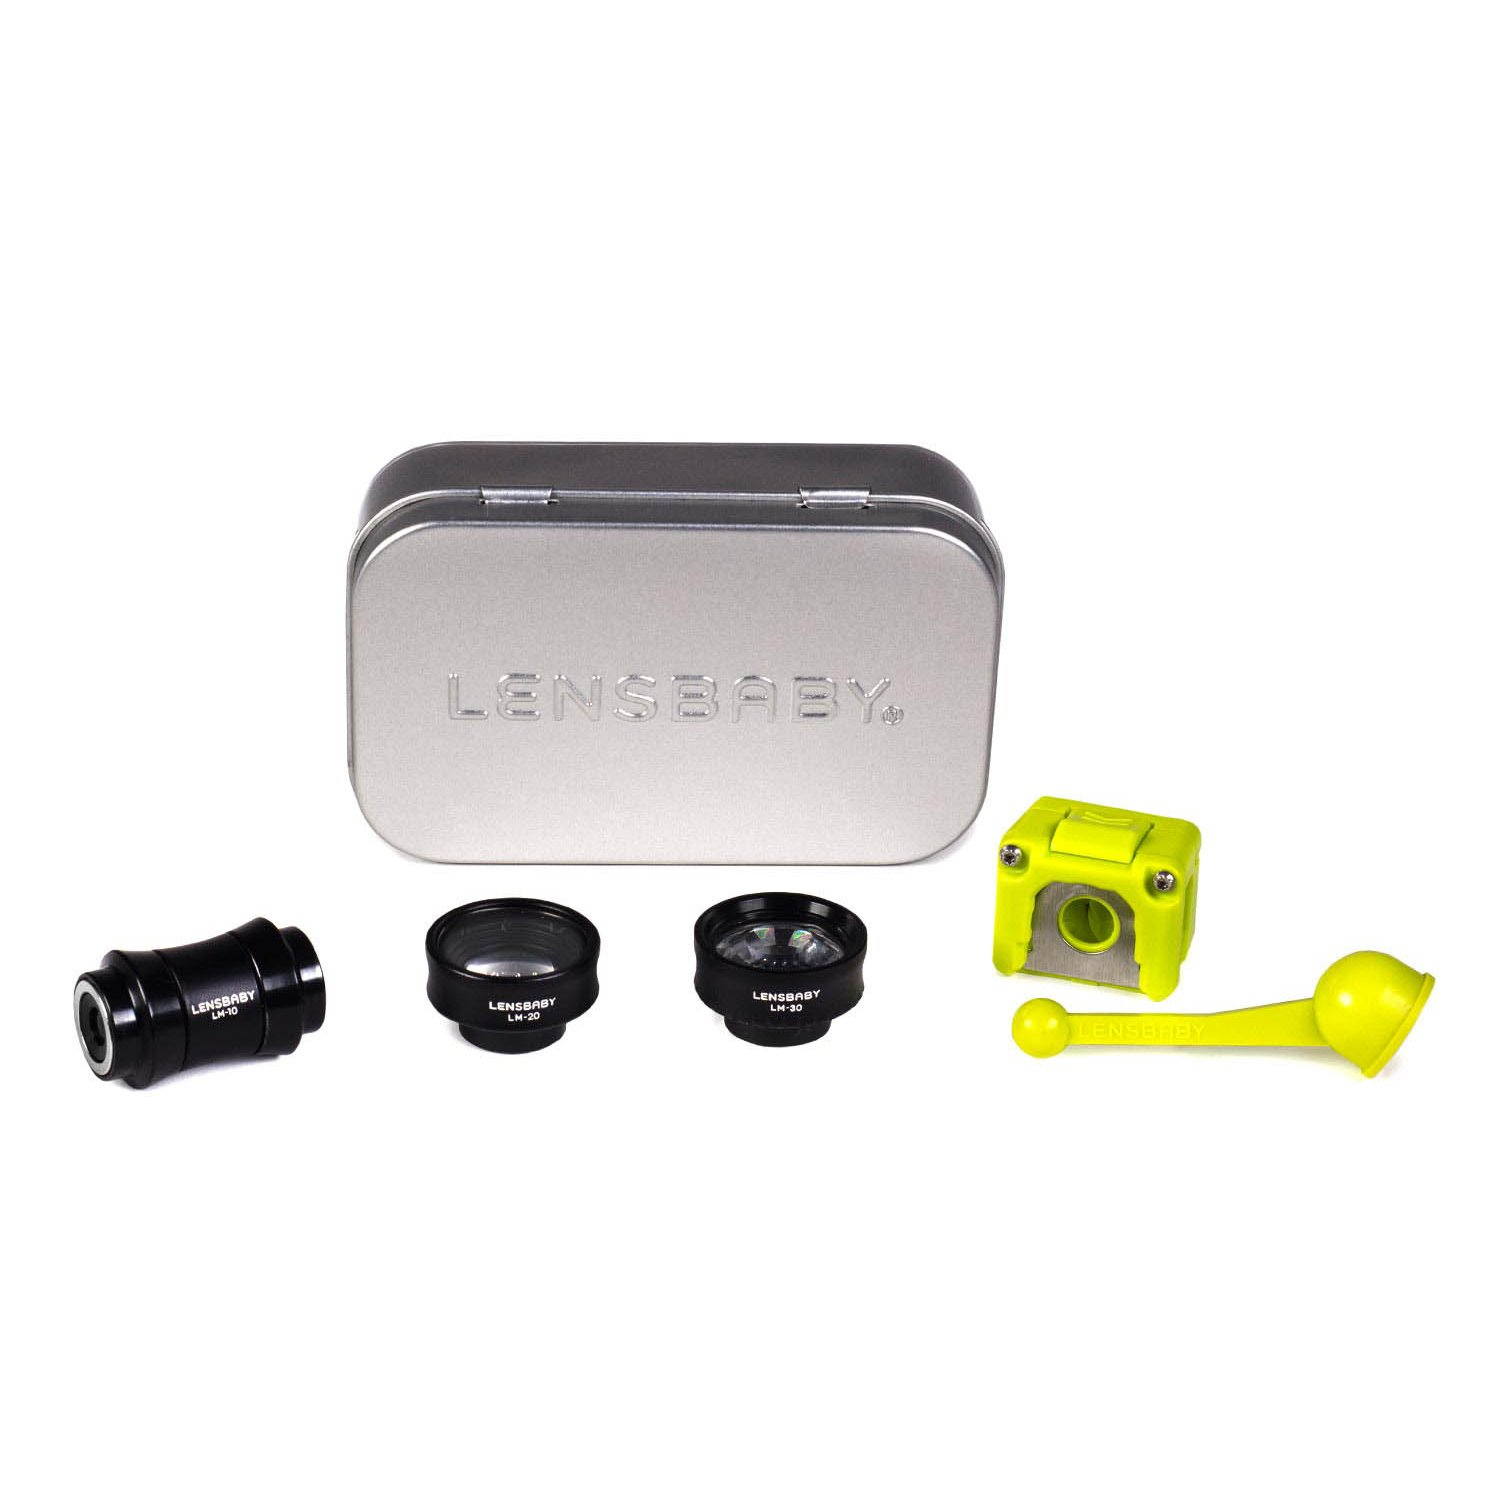 Lensbaby Deluxe Creative Mobile Lens Kit for iPhone 7 w/ Power Bank & Selfie Stick & Accessory Bundle by Focus Camera (Image #2)